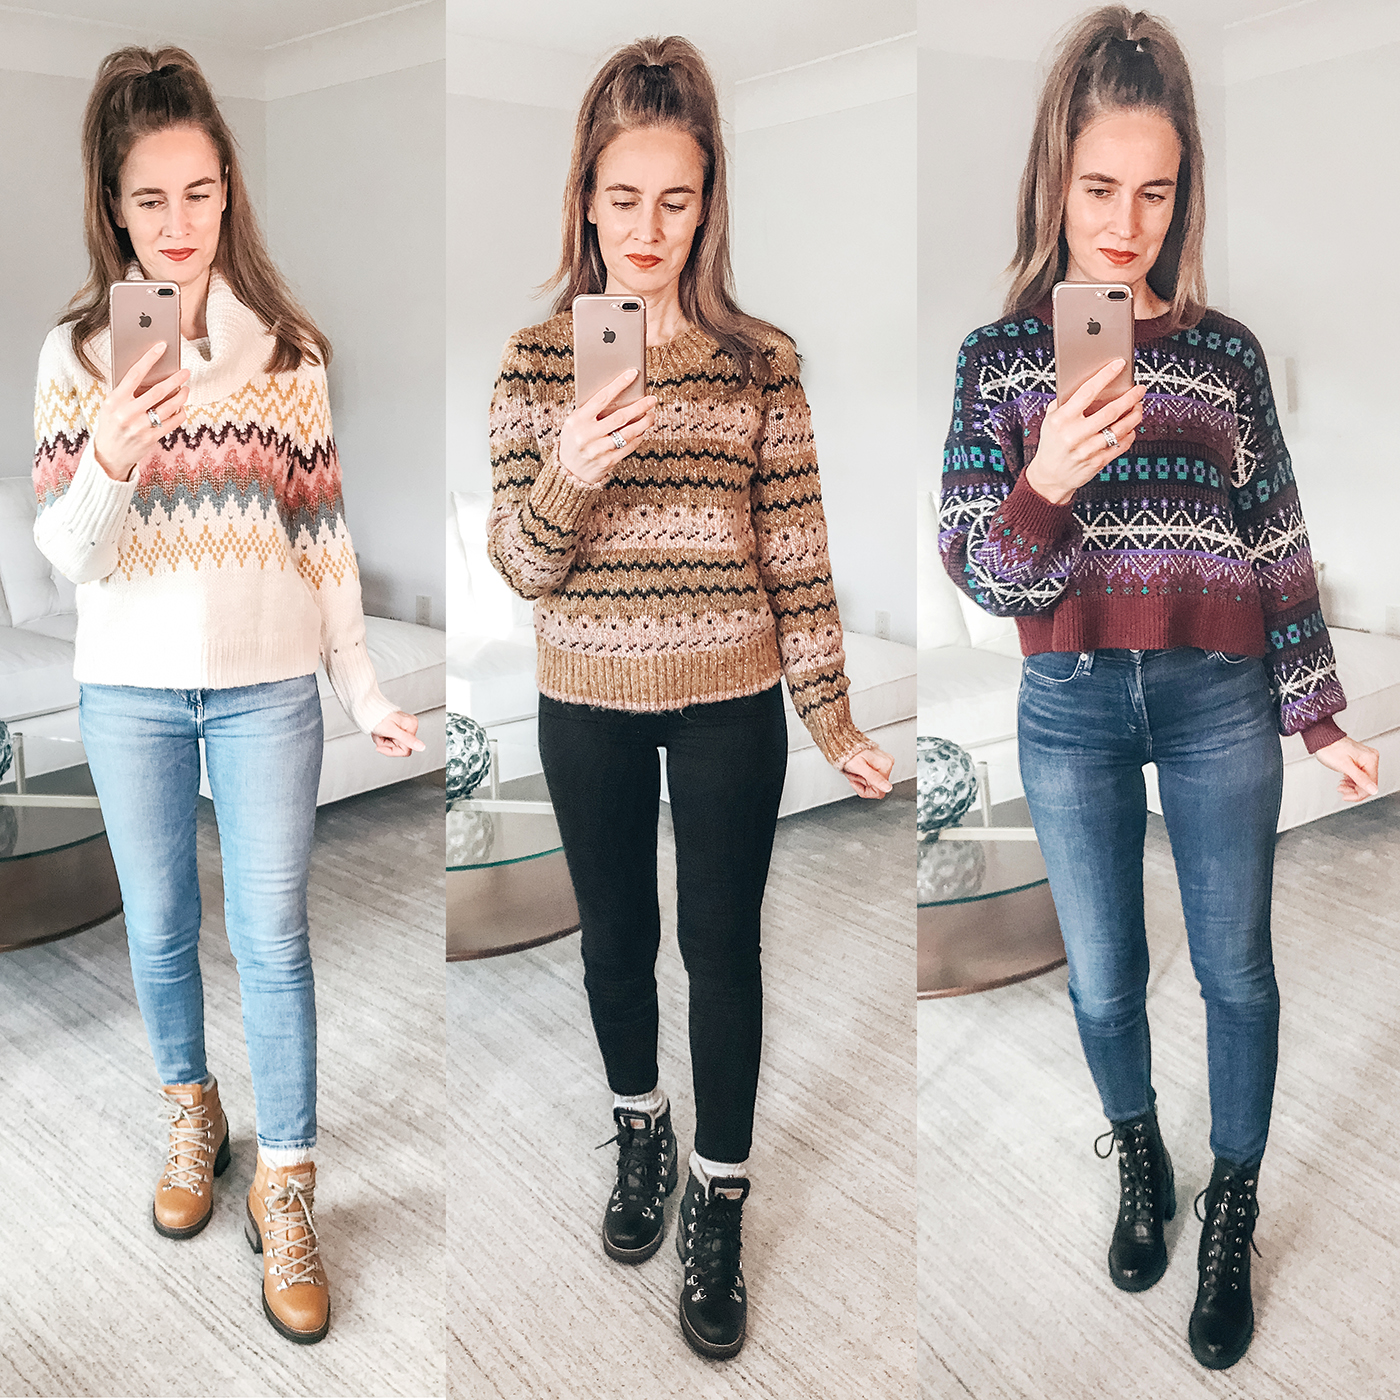 Cozy fairisle winter sweaters, hiking boots, jeans